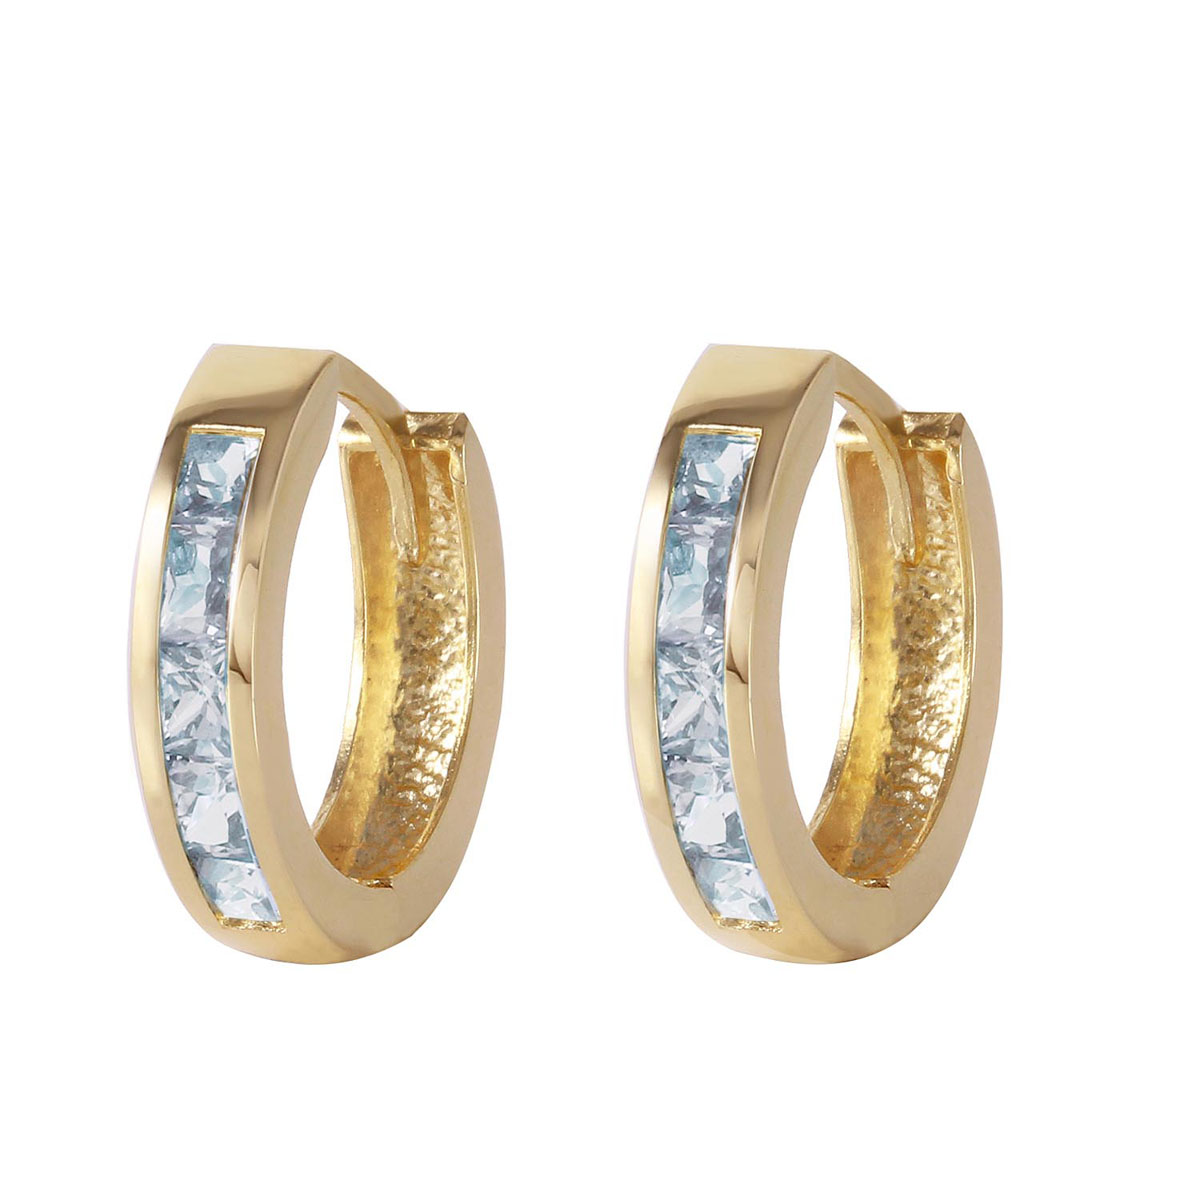 Aquamarine Huggie Earrings 0.85 ctw in 9ct Gold